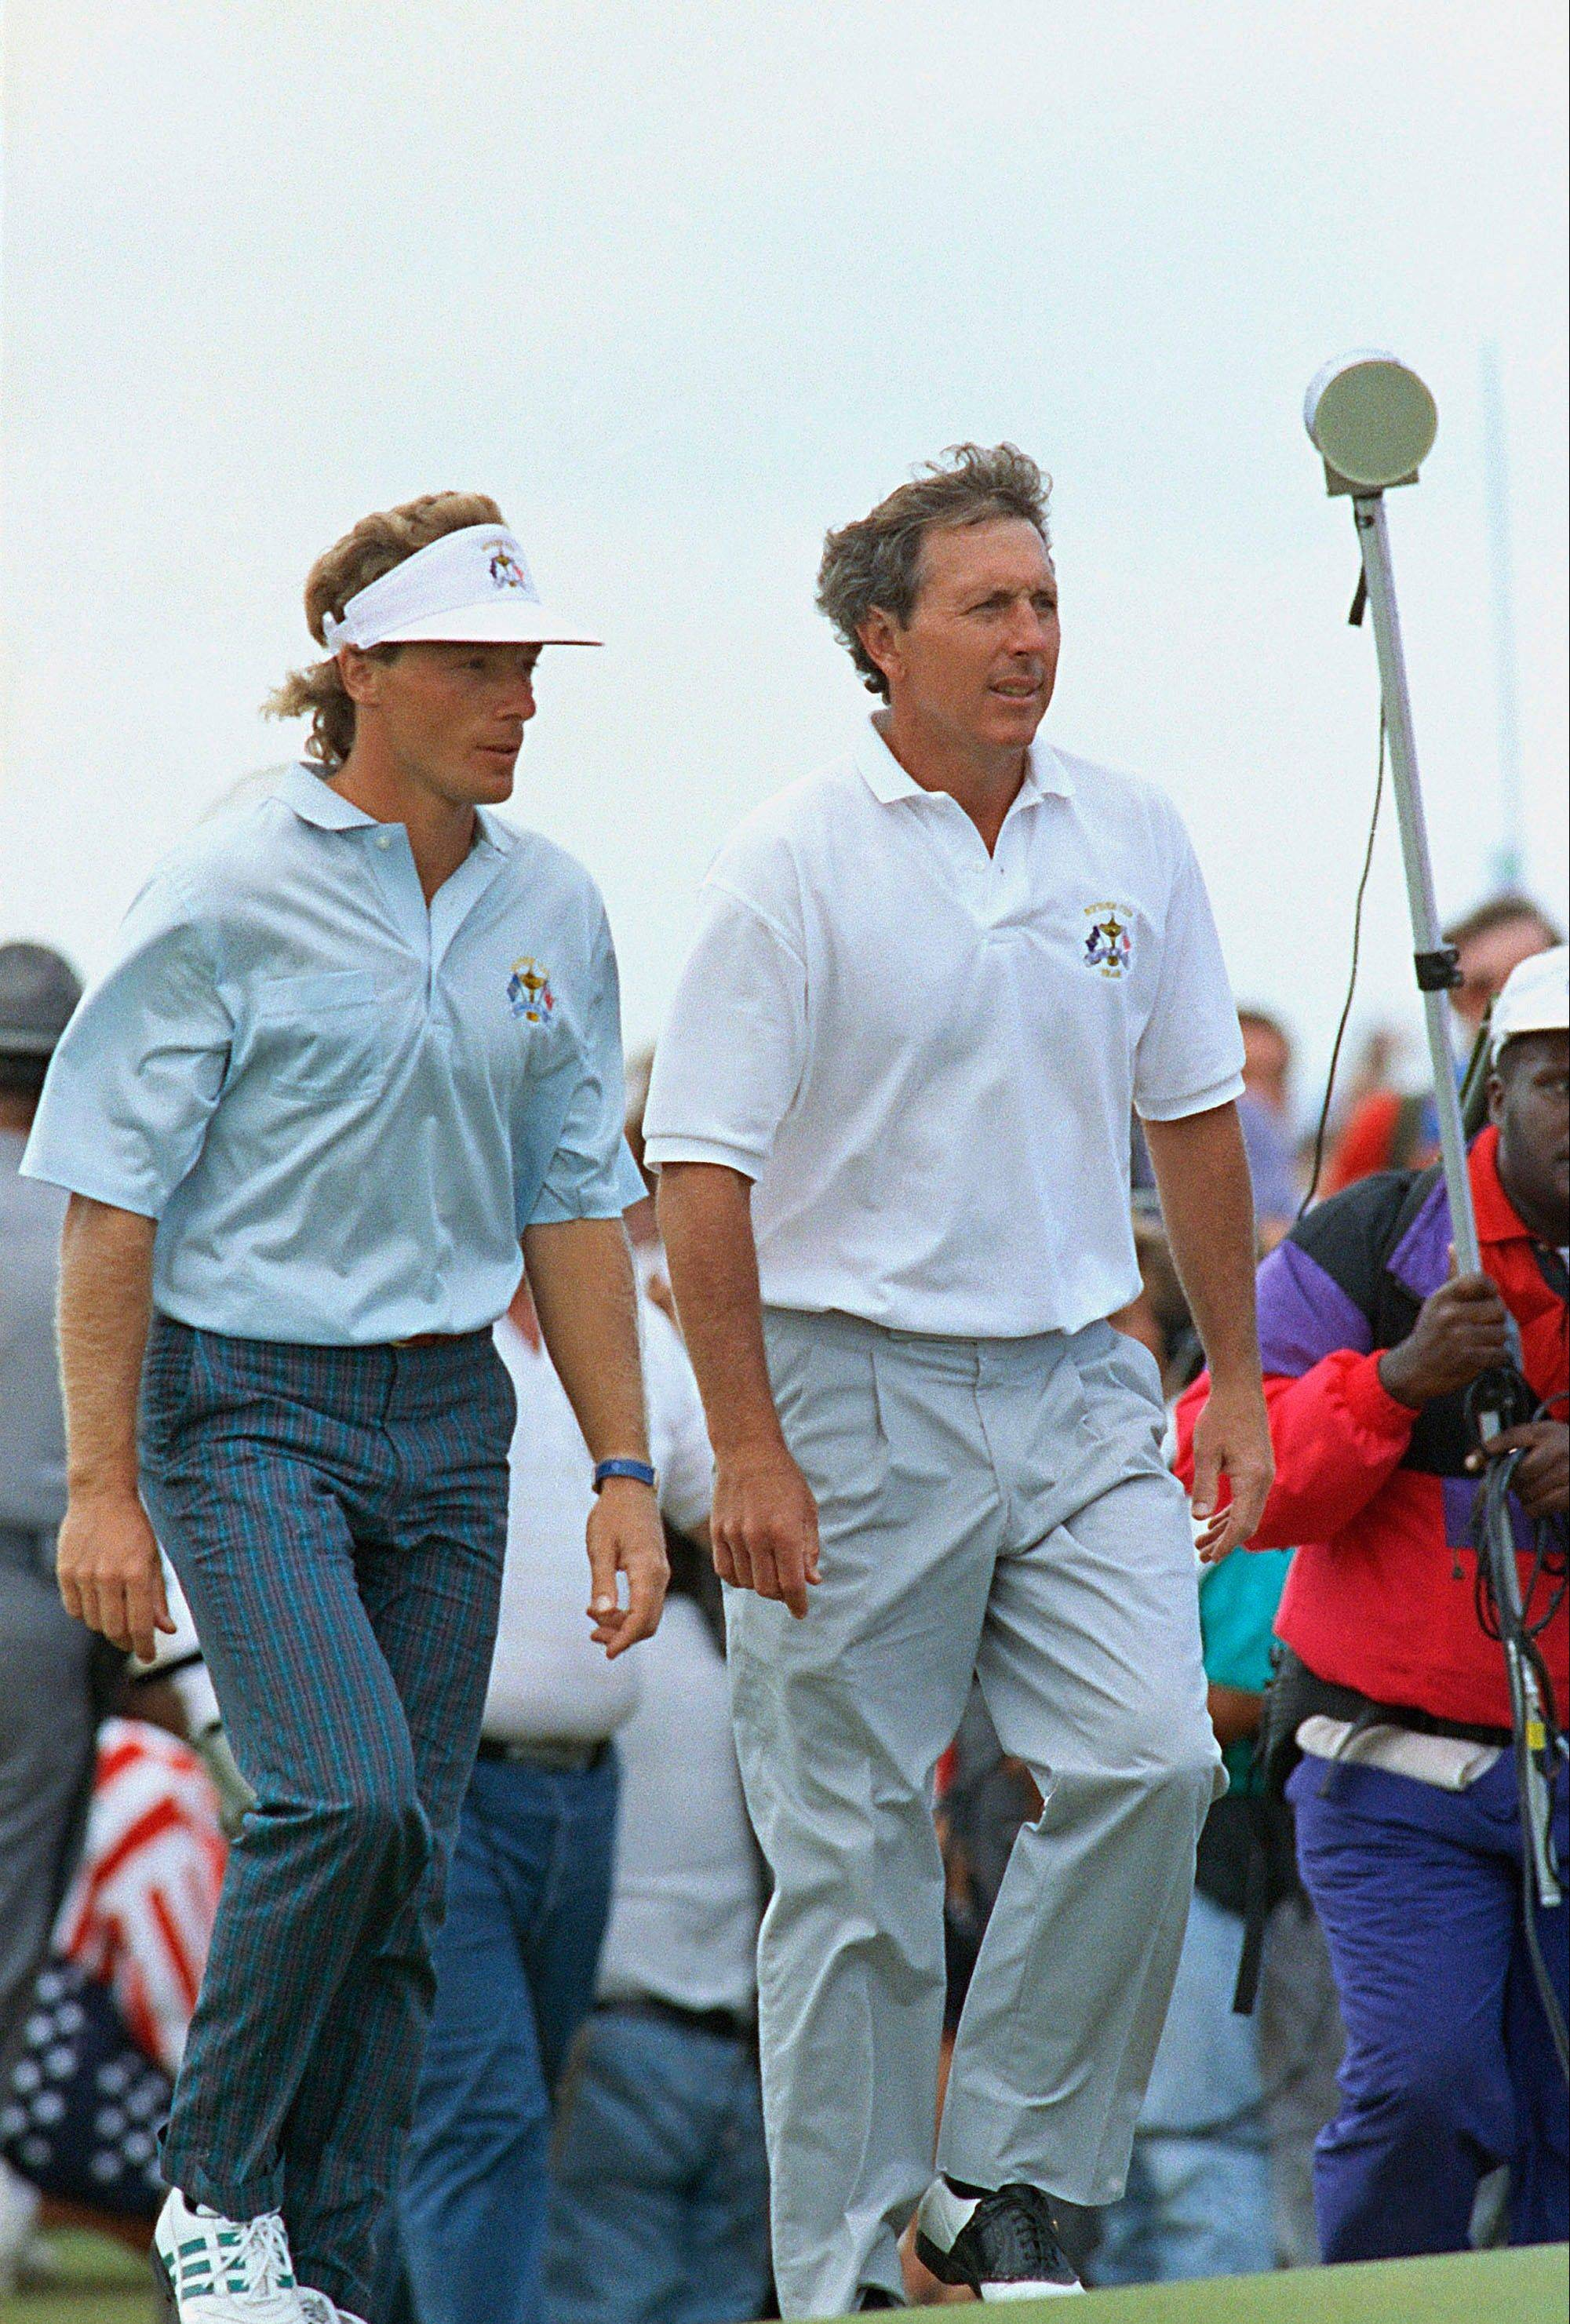 "Bernard Langer, left, a member of the European Ryder Cup team, and Hale Irwin, a member of the U.S. Ryder Cup team walk together on the 17th green during the deciding match of 1991 Ryder Cup, which became known as ""The War by the Shore."" The United States rallied to win the event at Kiawah Island, S.C., as Langer three-putted on the 18th green to split the final match."